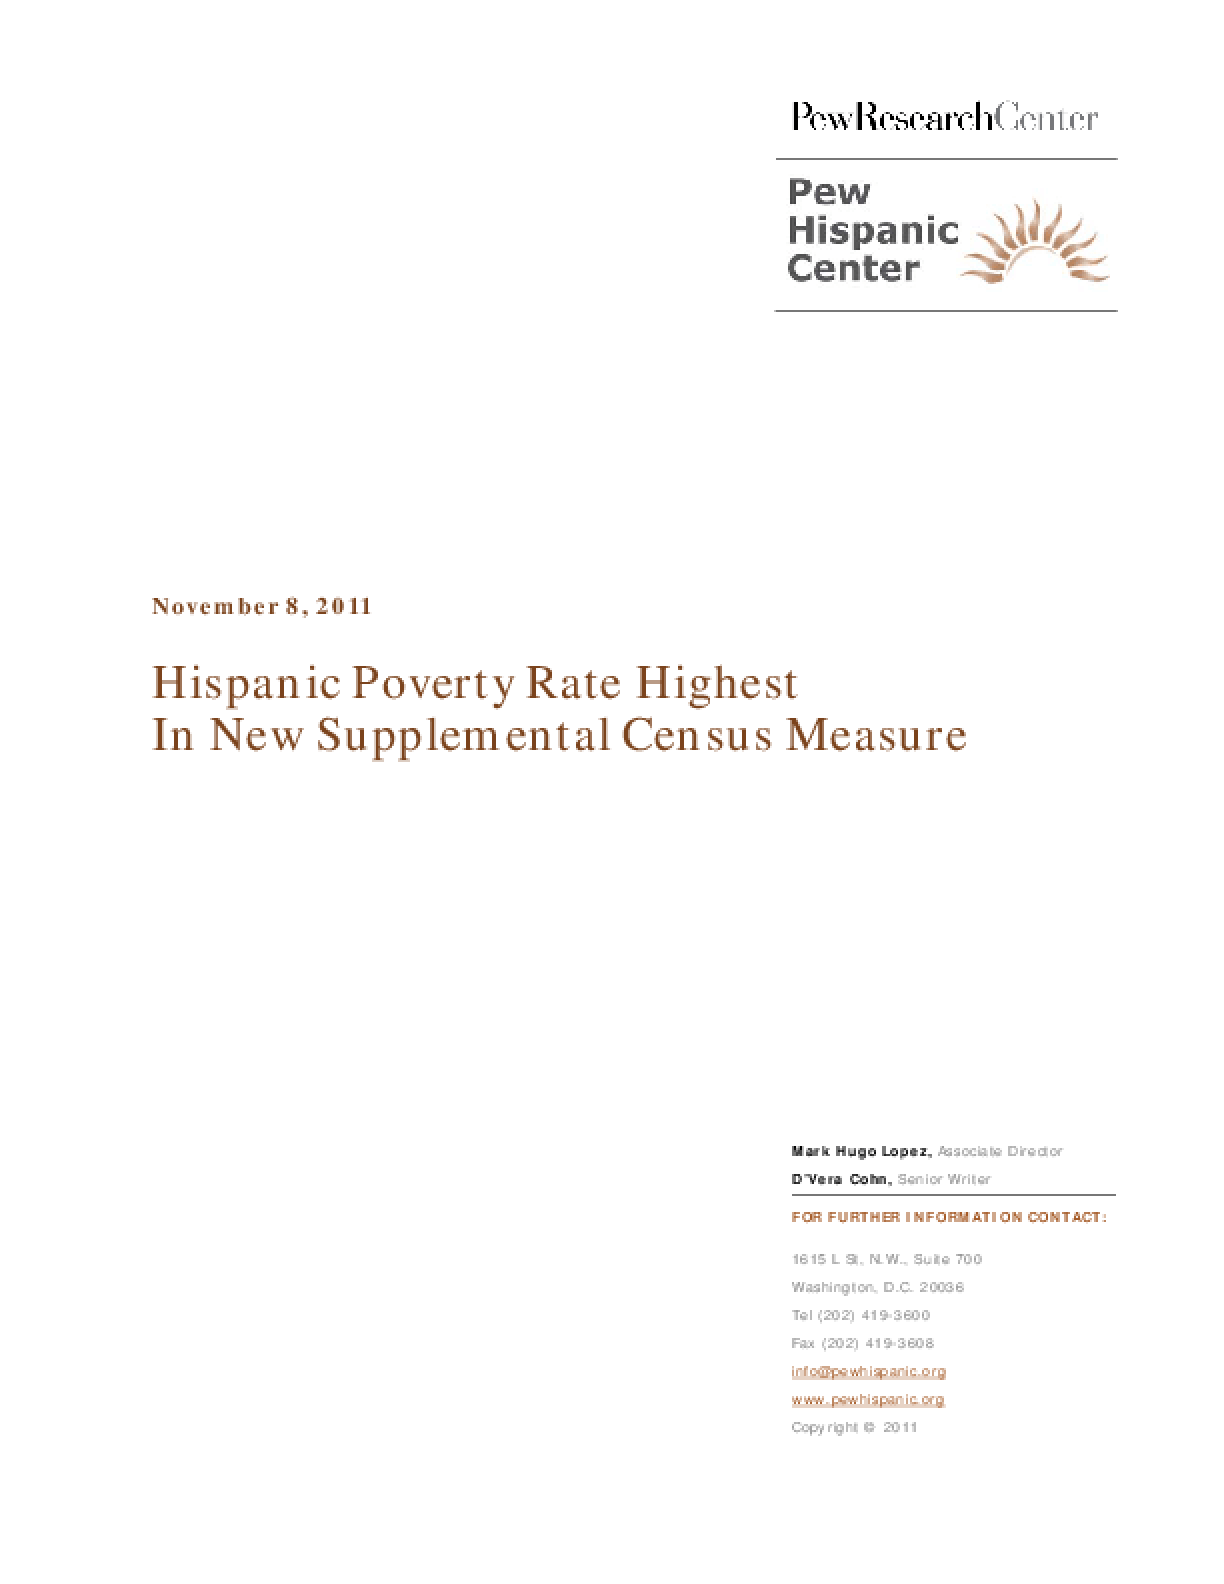 Hispanic Poverty Rate Highest in New Supplemental Census Measure